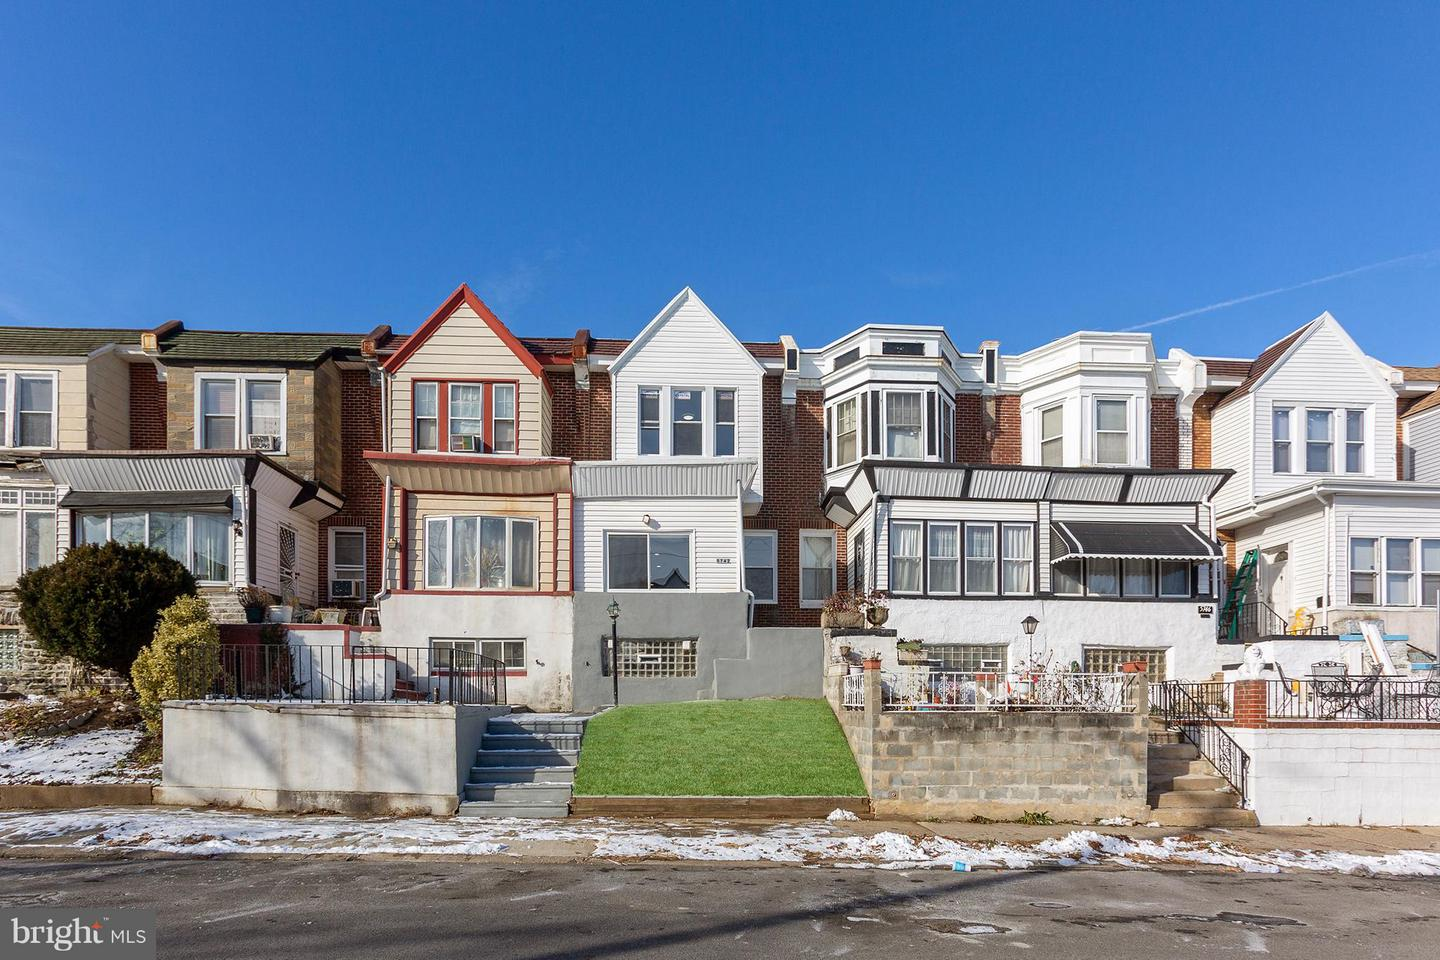 5742 N 12TH Street Philadelphia, PA 19141